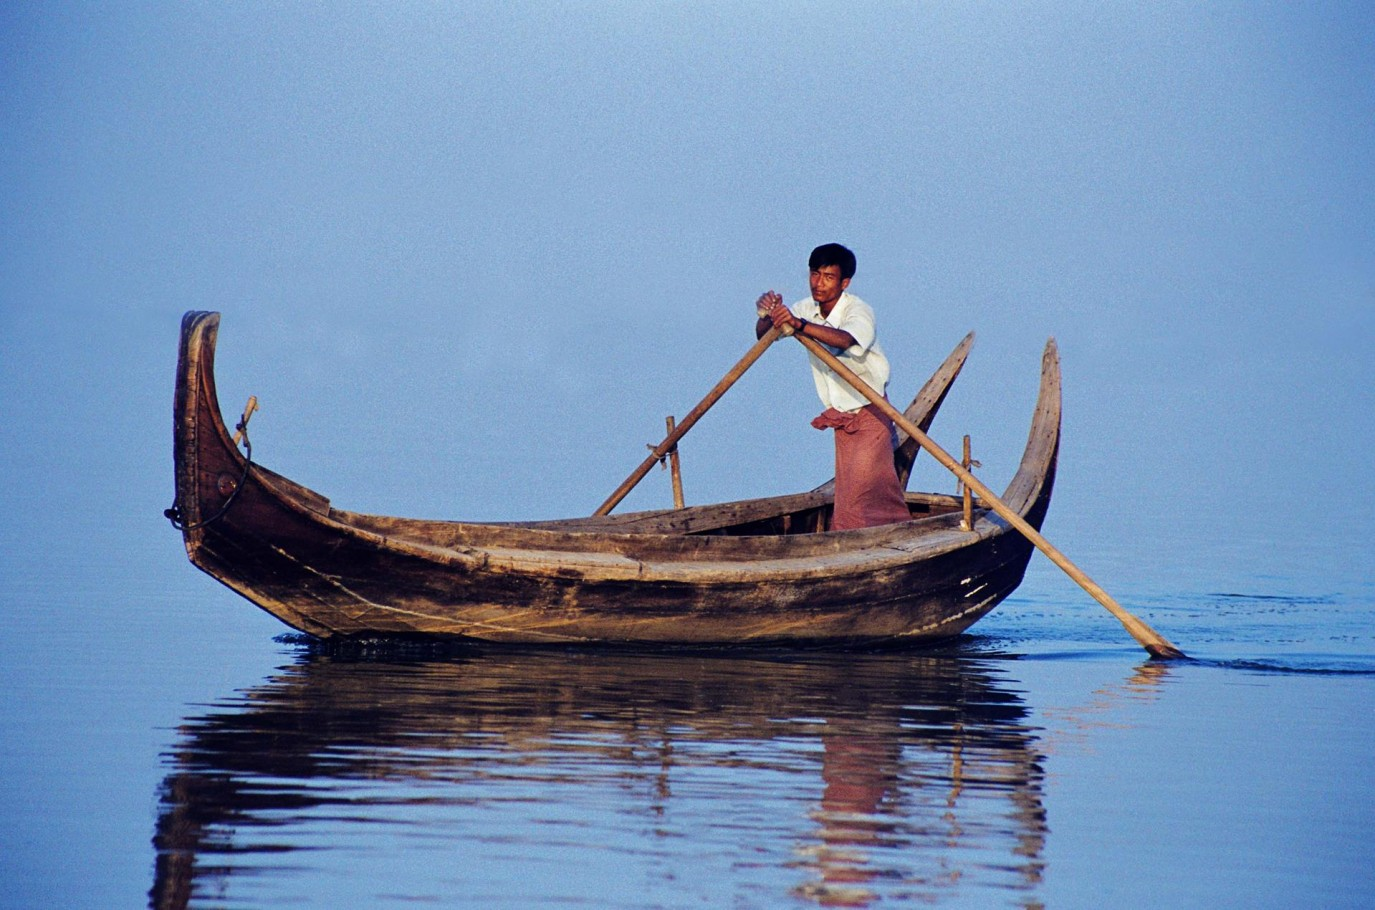 Irrawaddy River Boatman